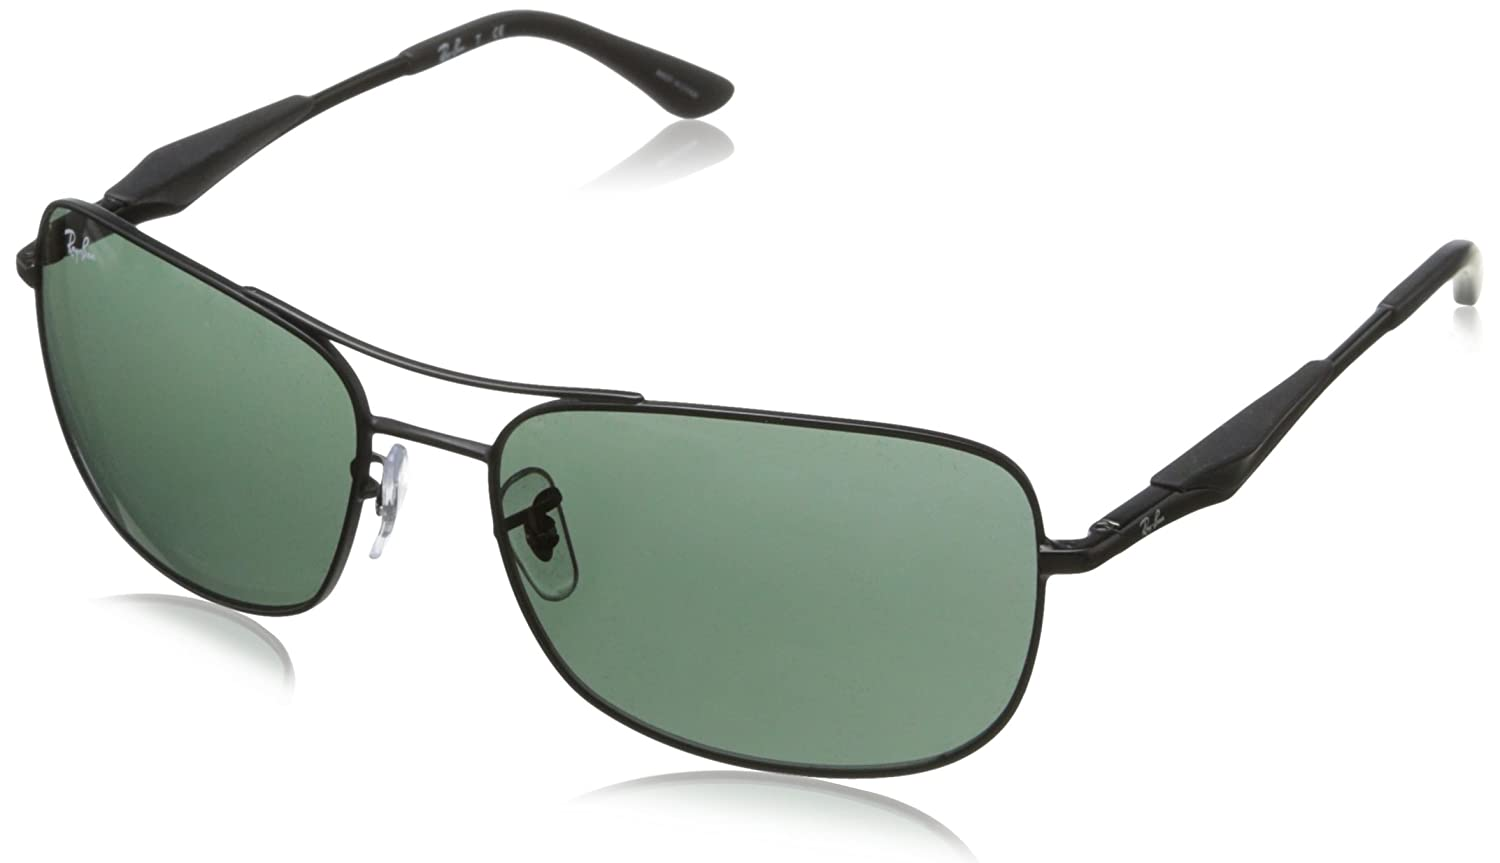 b4235b95fa Amazon.com  Ray-Ban RB3515 Sunglasses Matte Gunmetal Polarized Brown 61mm   Ray-Ban  Shoes